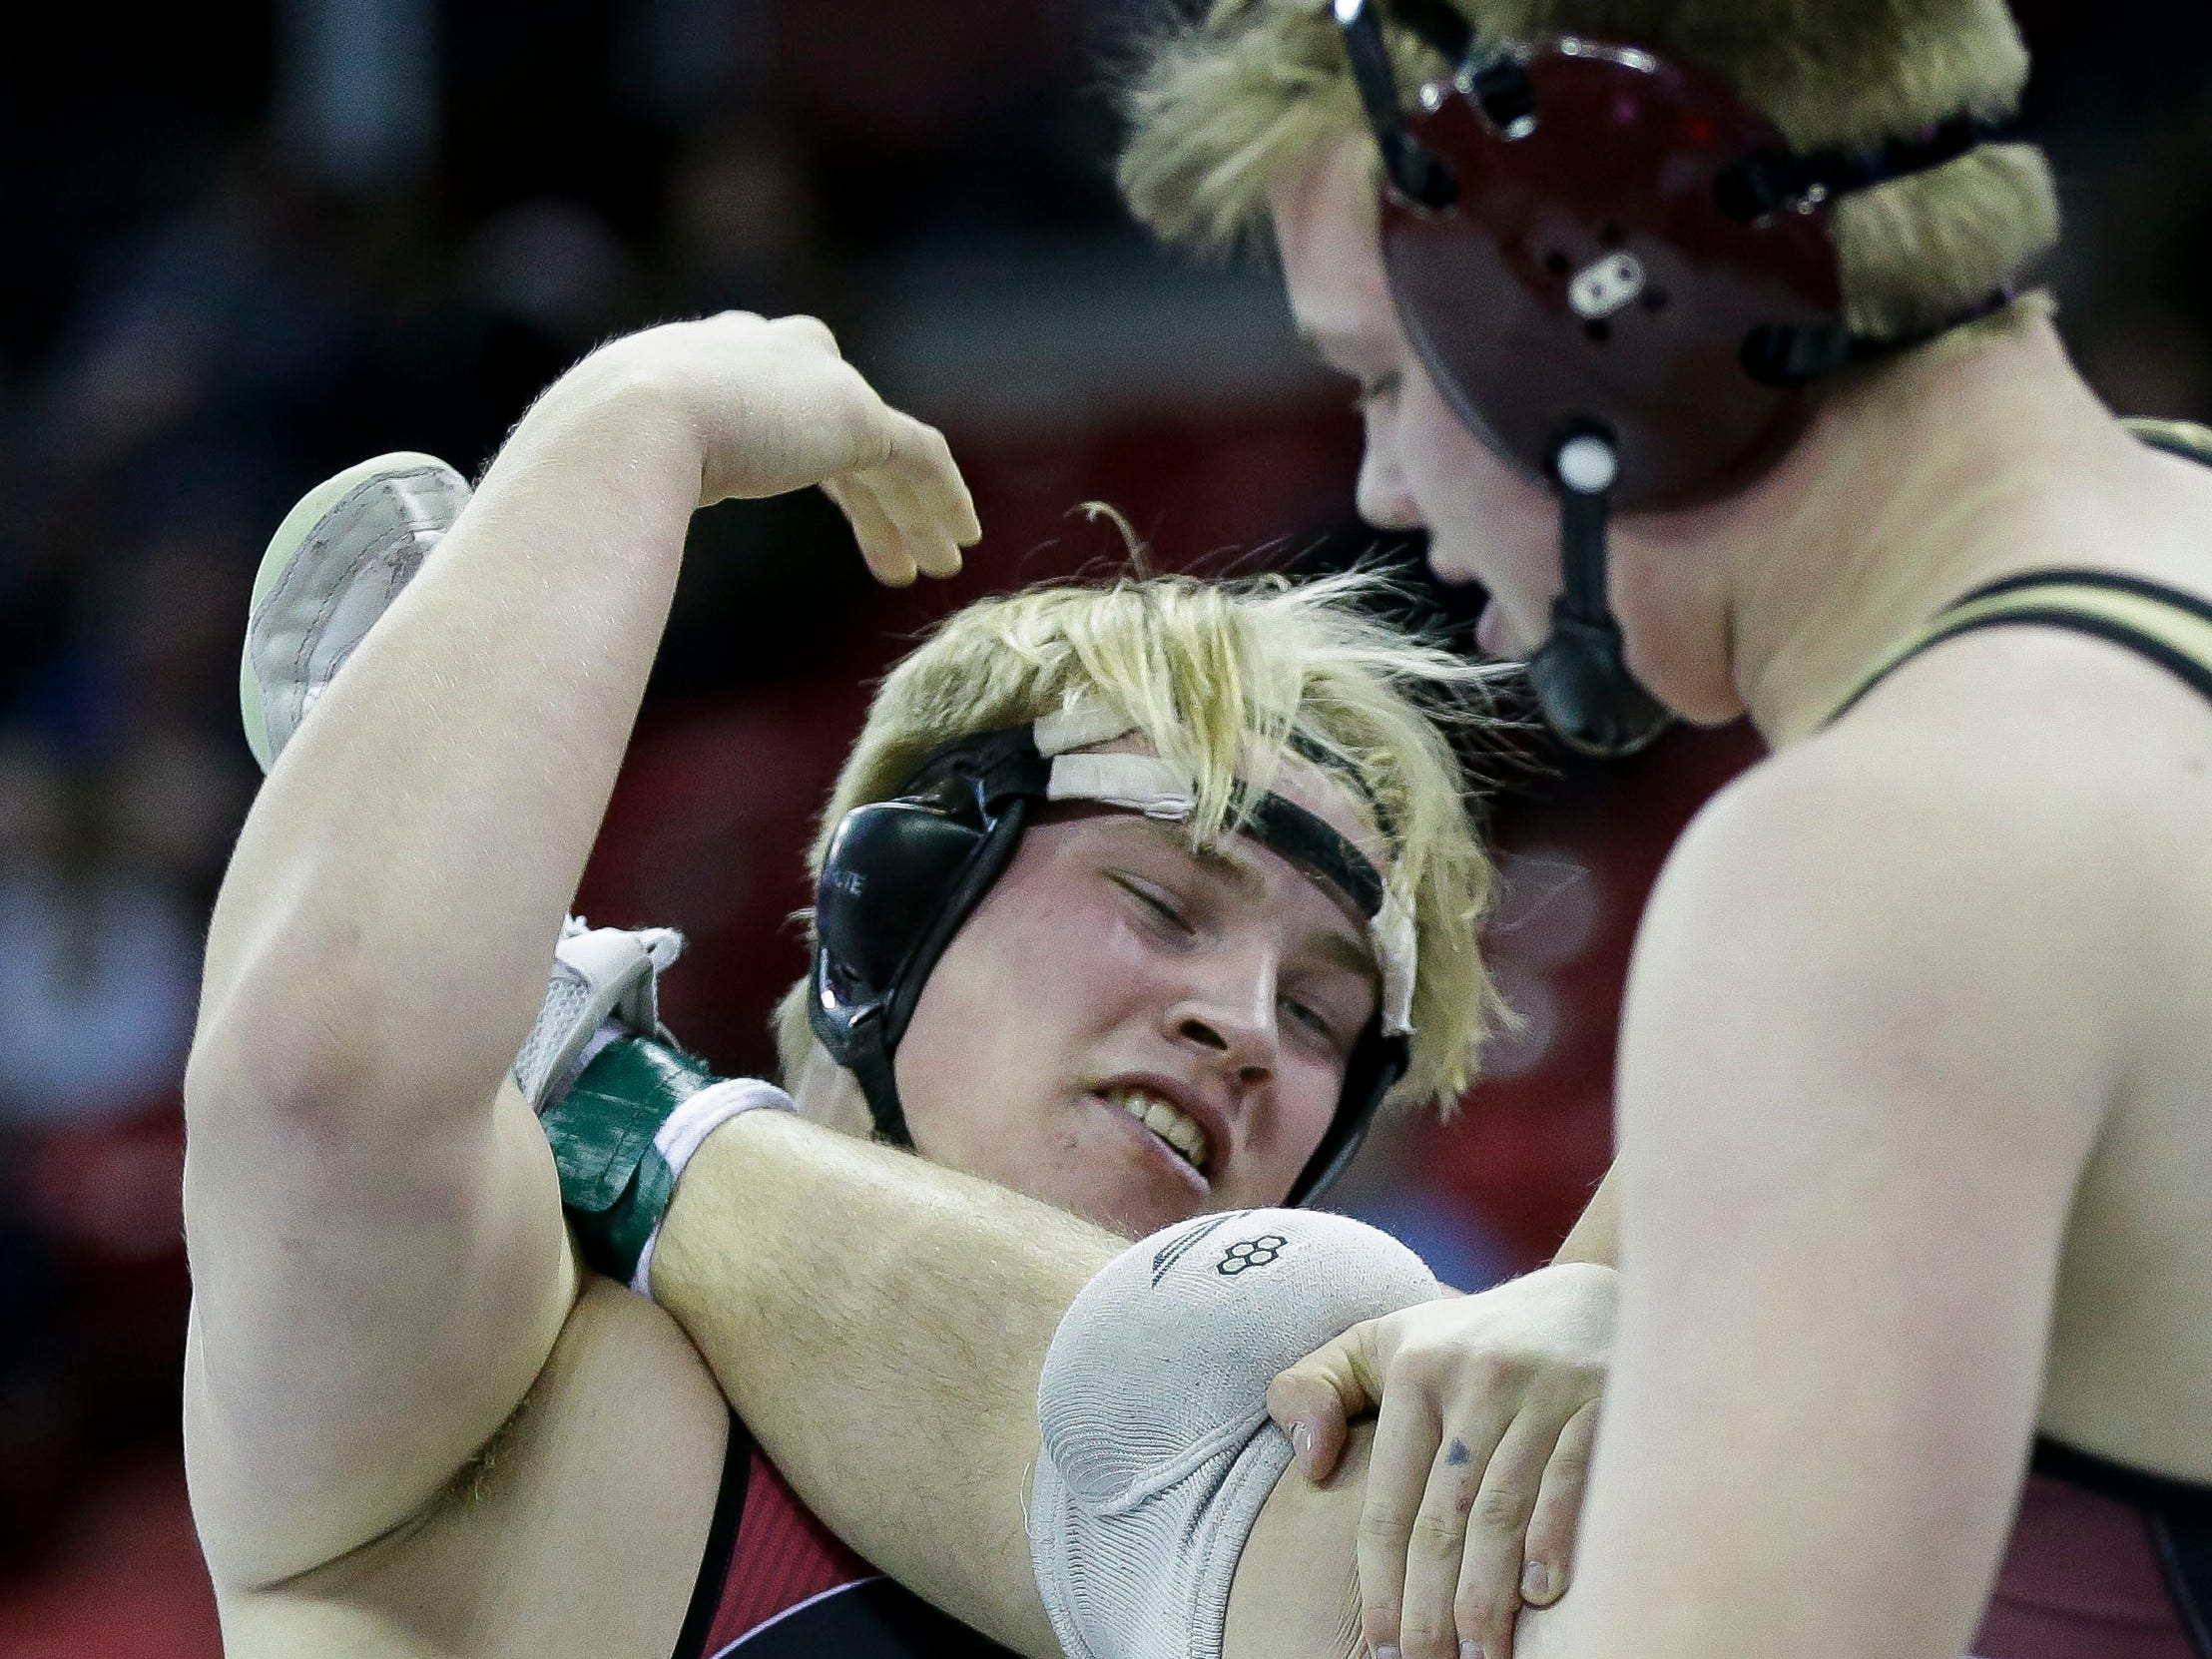 Medford's Jake Rau works to take down Gale-Ettrick-Trempealeau/Melrose-Mindoro's Trevor Daffinson in a Division 2 220-pound preliminary match during the WIAA state wrestling tournament on Thursday, February 21, 2019, at the Kohl Center in Madison, Wis.